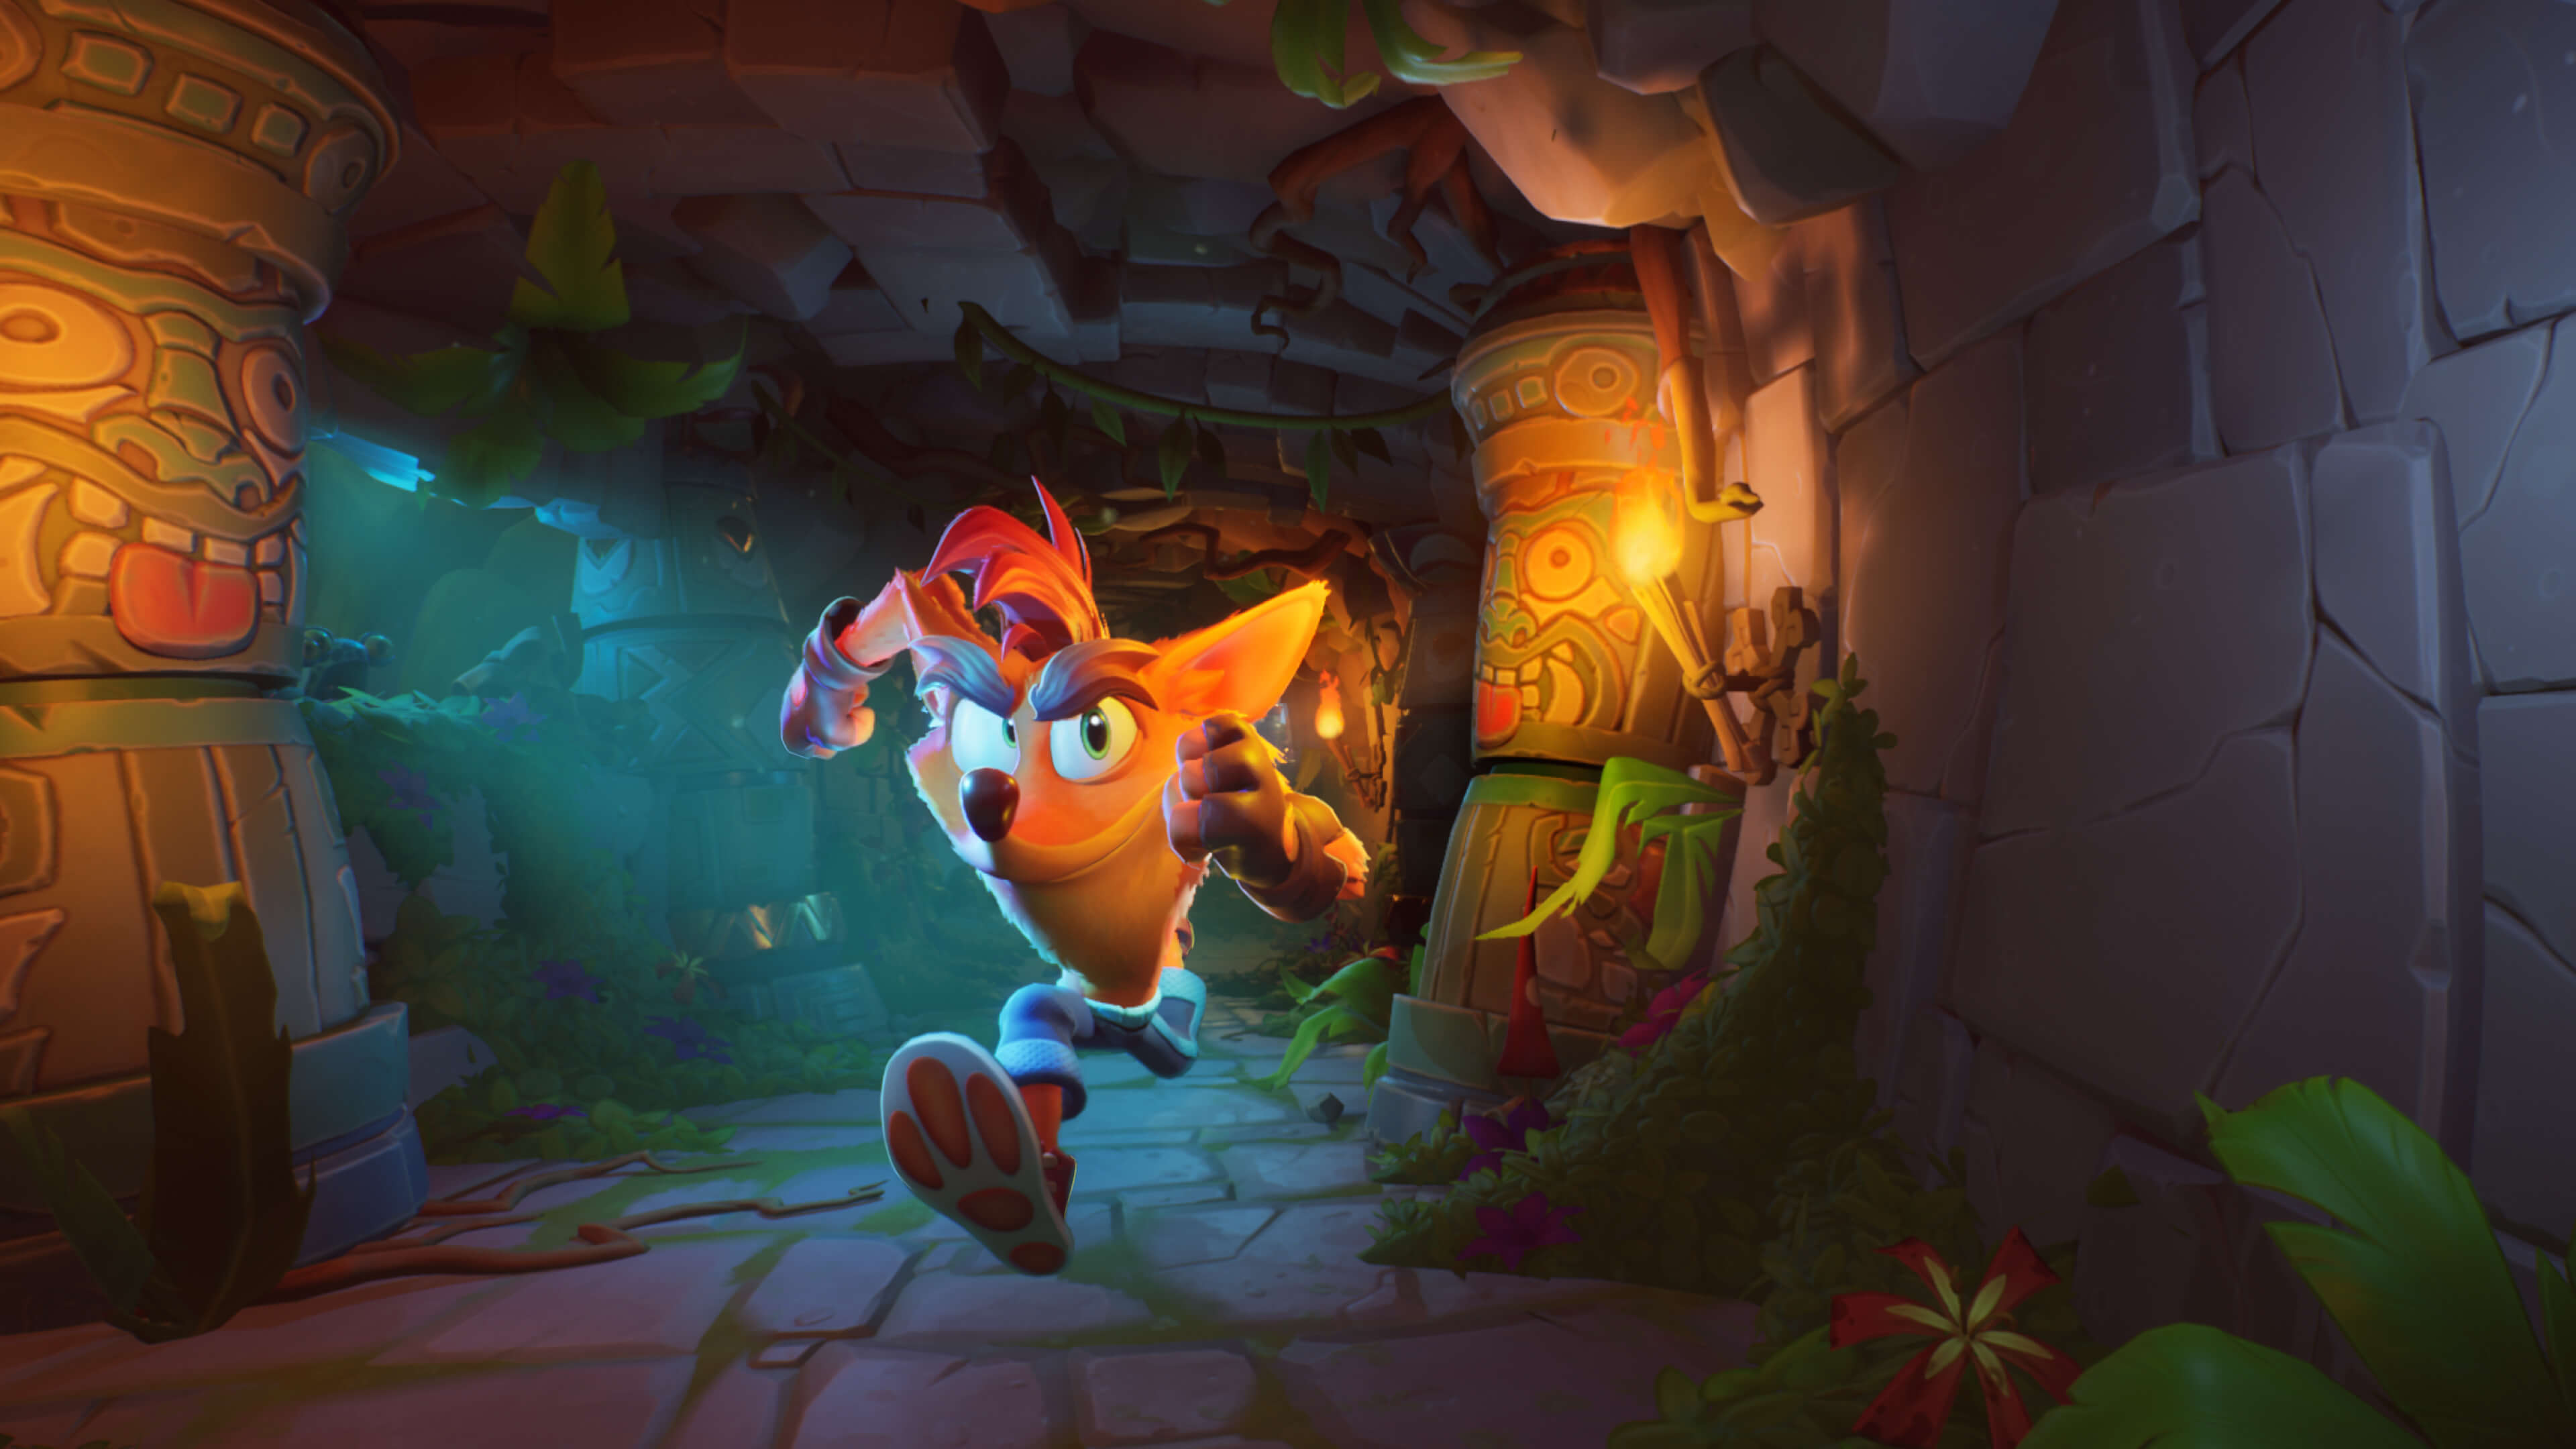 Crash Bandicoot 4' comes to PC on March 26th | Engadget